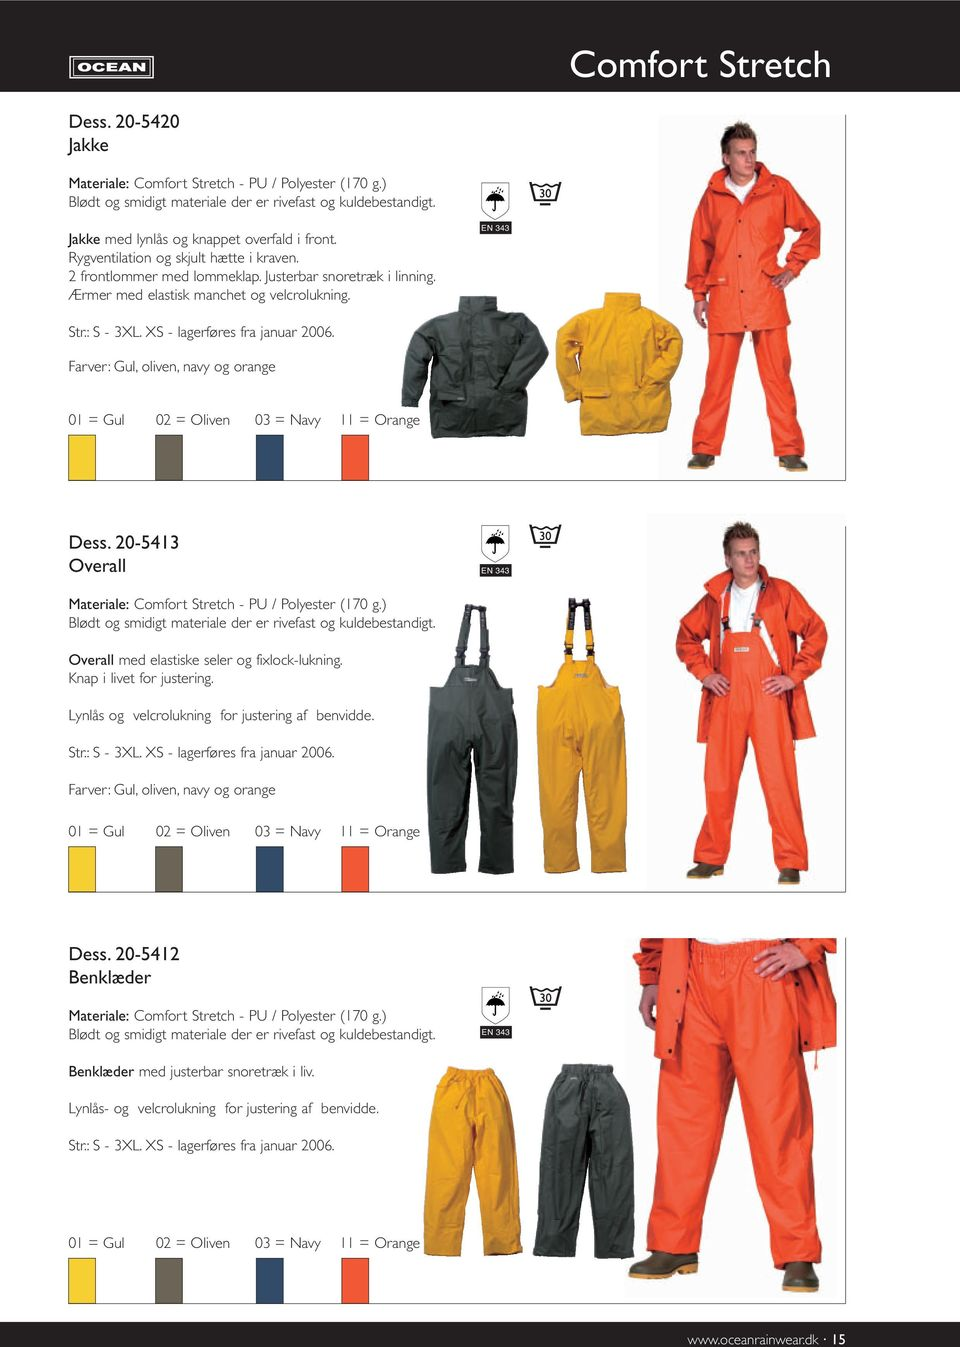 Farver: Gul, oliven, navy og orange 01 = Gul 02 = Oliven 03 = Navy 11 = Orange Dess. 20-5413 Overall Materiale: Comfort Stretch - PU / Polyester (170 g.